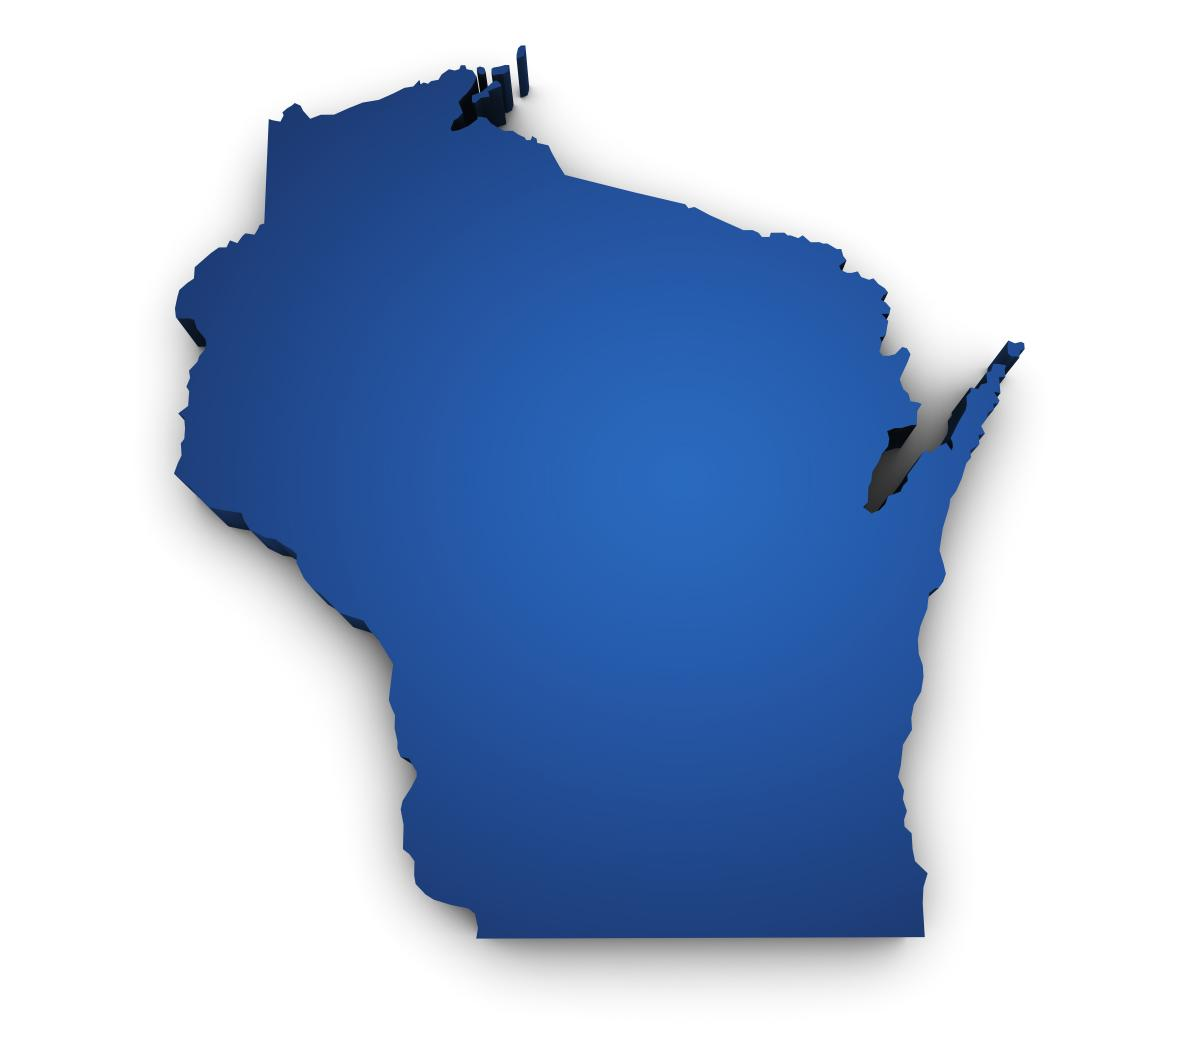 State of Wisconsin symbol